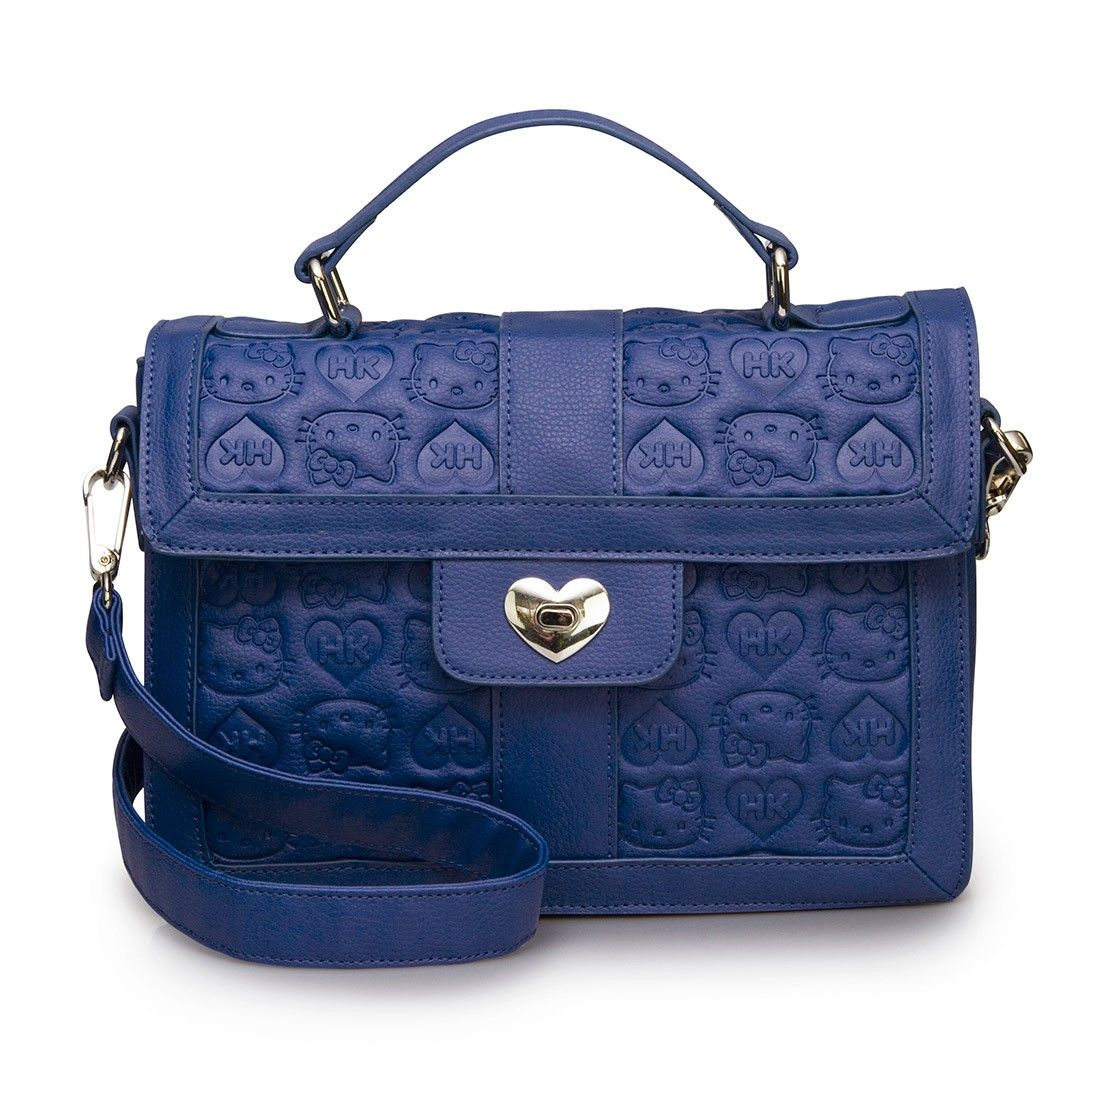 afbcb0773 Hello Kitty Blue Embossed Satchel With Heart Lock - Bags - Whats New ...